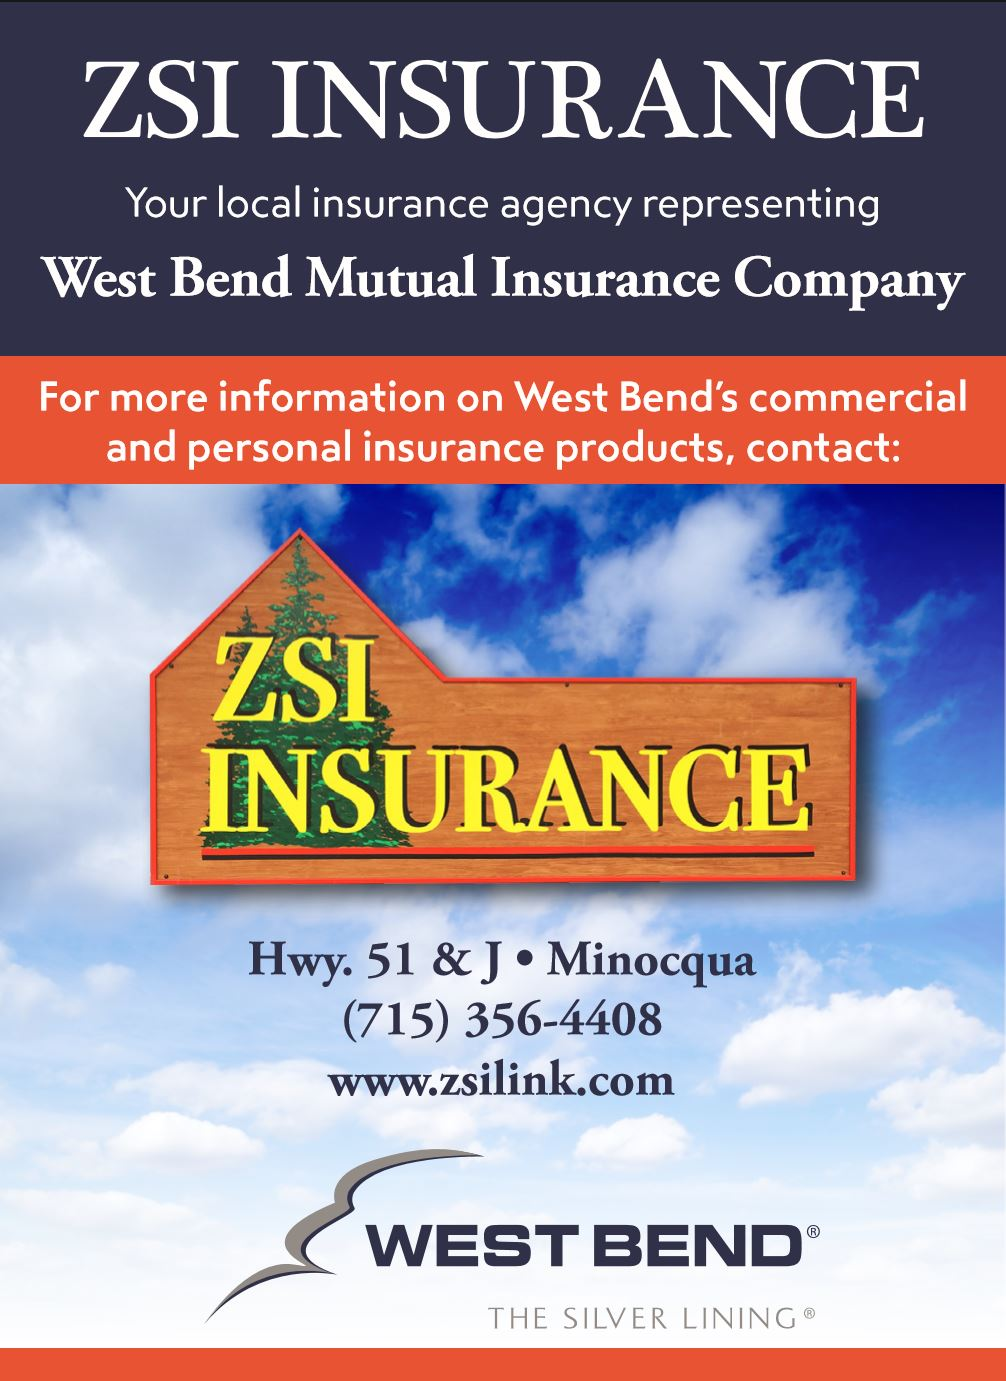 ZSI Insurance Advertisement 2017